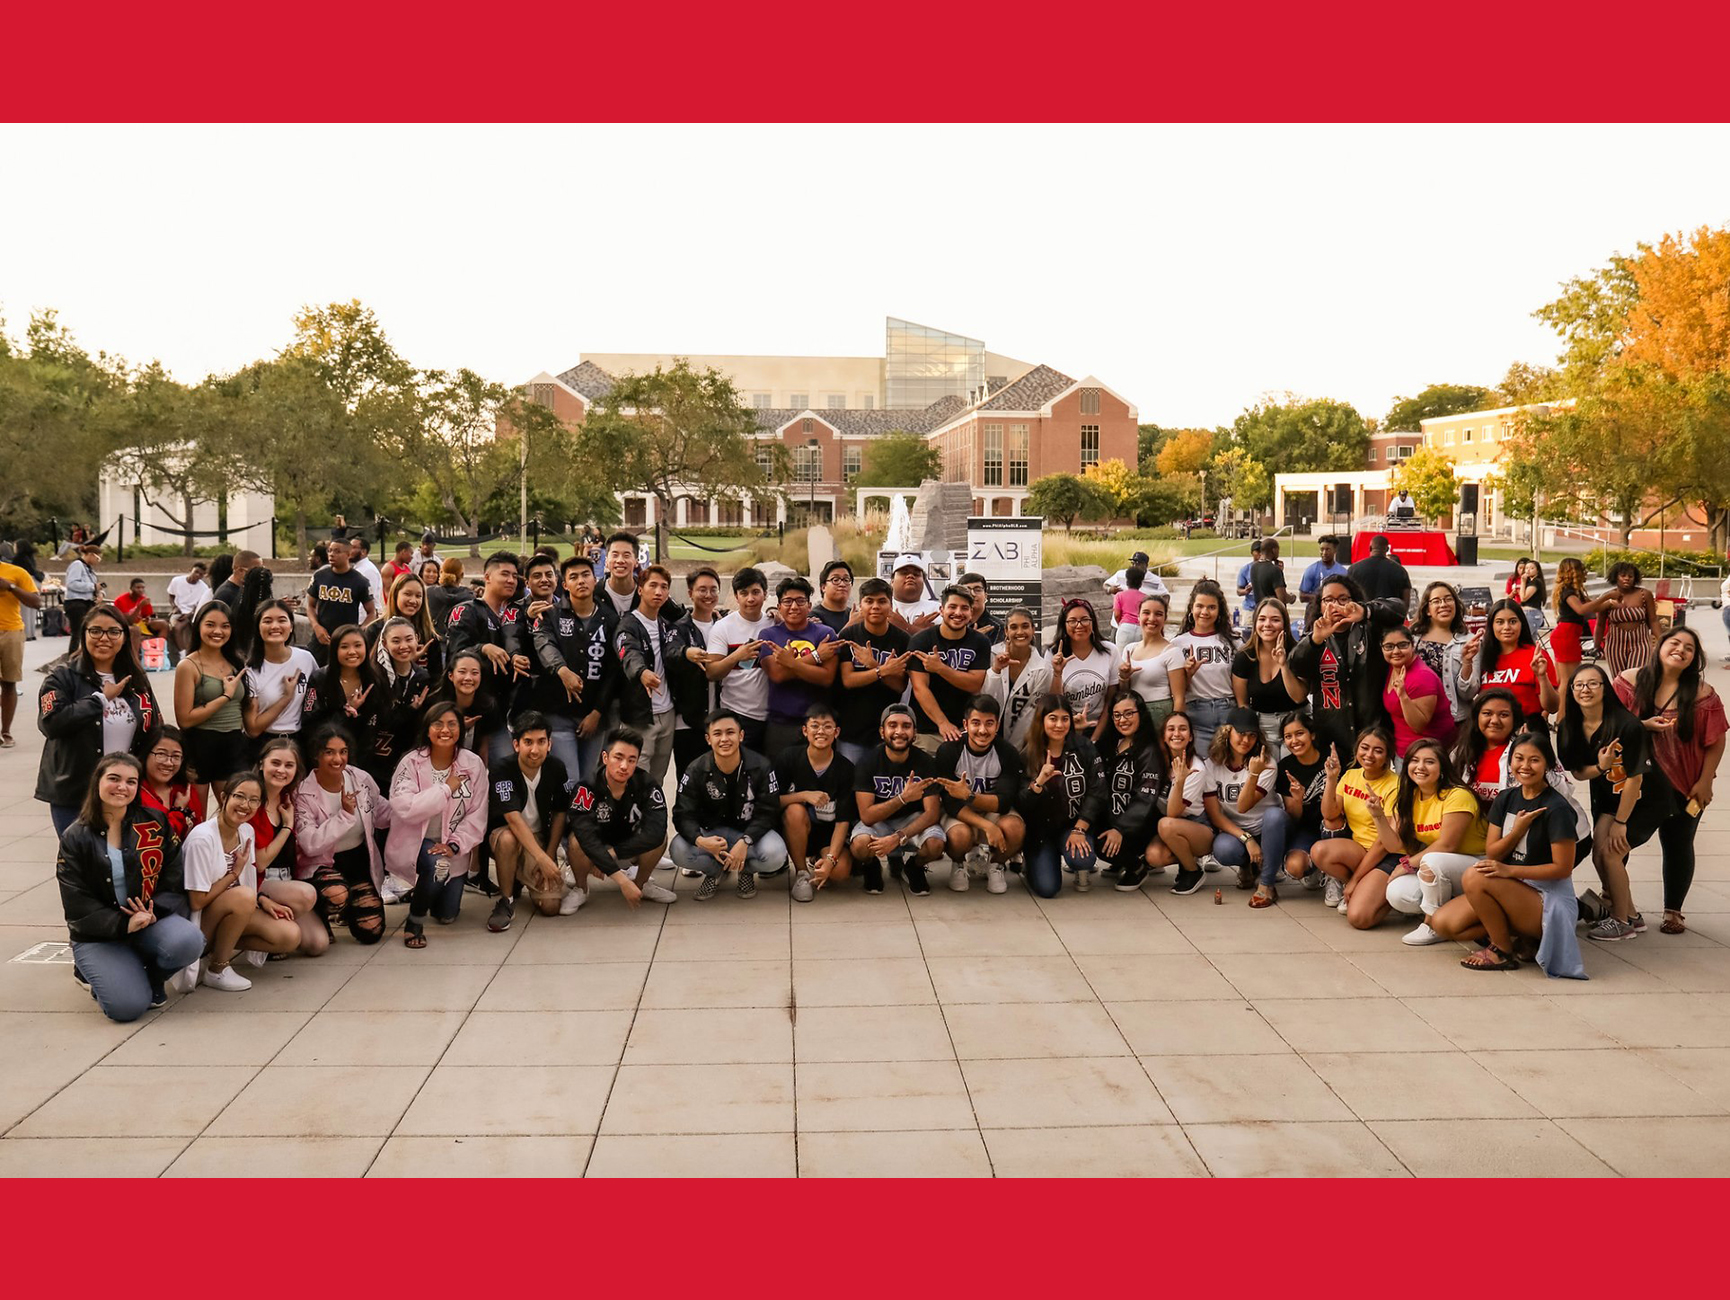 Numerous organizations comprise the Multicultural Greek Council at the University of Nebraska-Lincoln. [courtesy image. photo taken prior to COVID-19 pandemic]